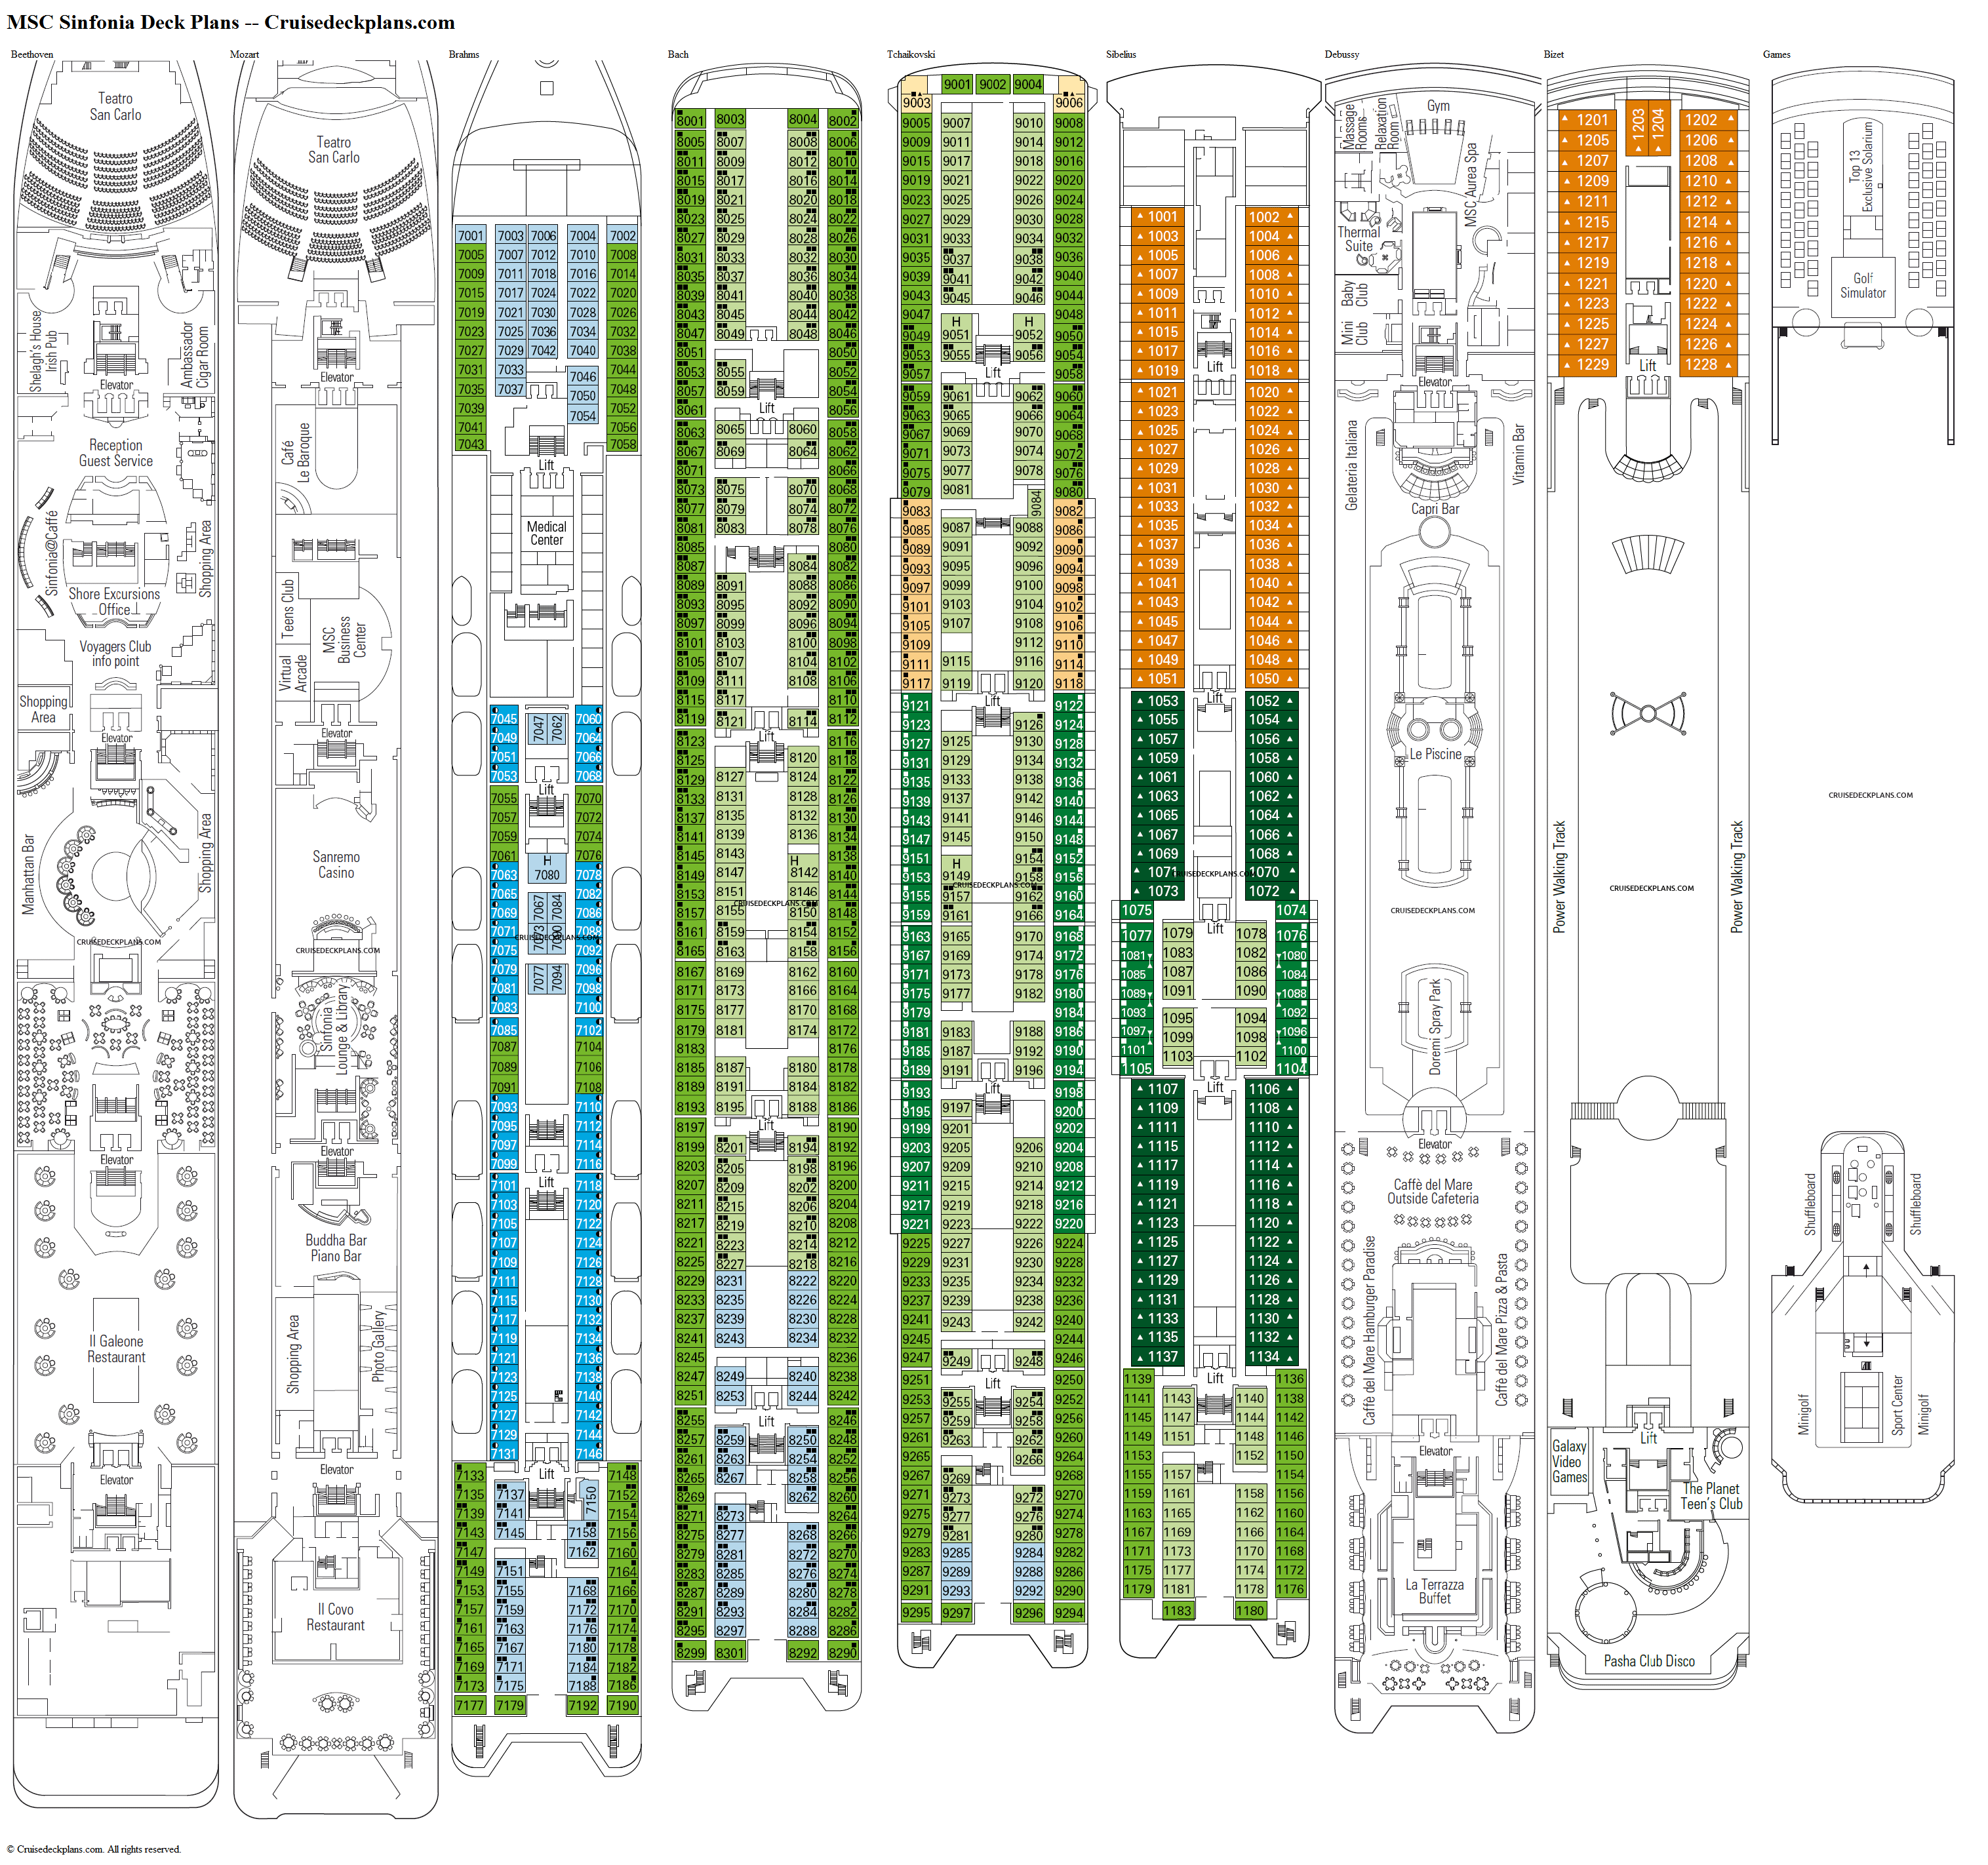 MSC Sinfonia deck plans image